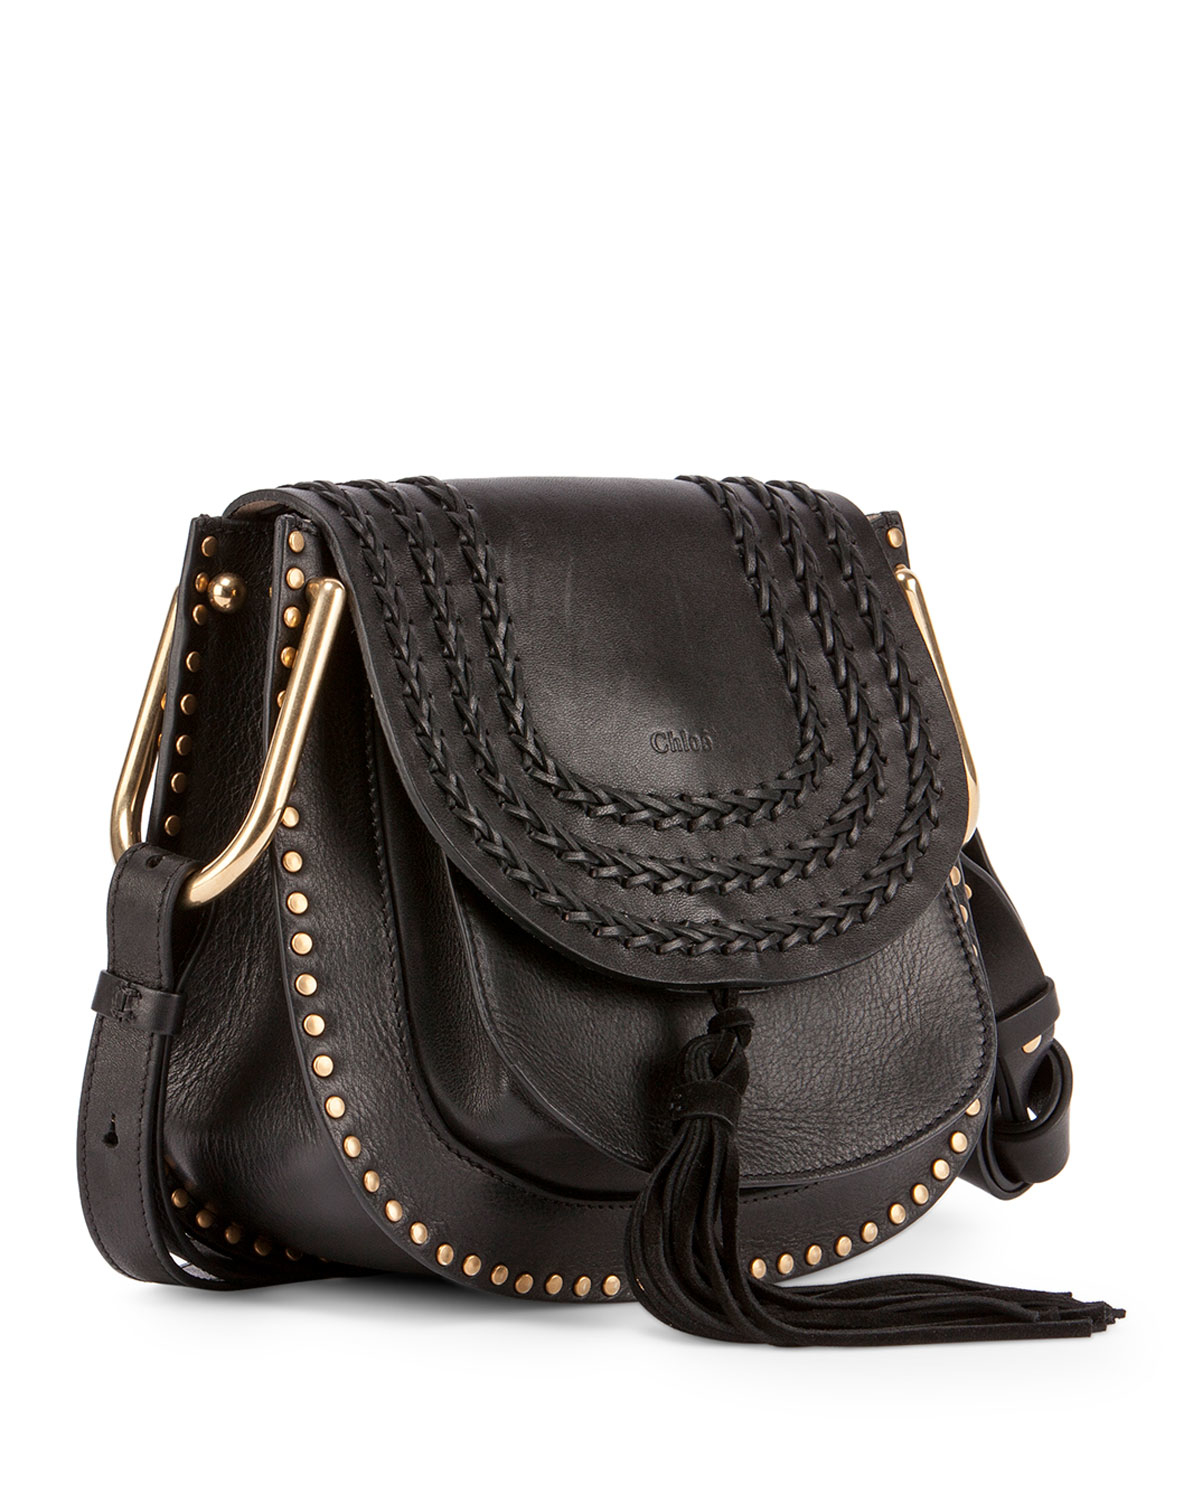 chloe knockoffs - Chlo�� Hudson Medium Leather Shoulder Bag in Black | Lyst